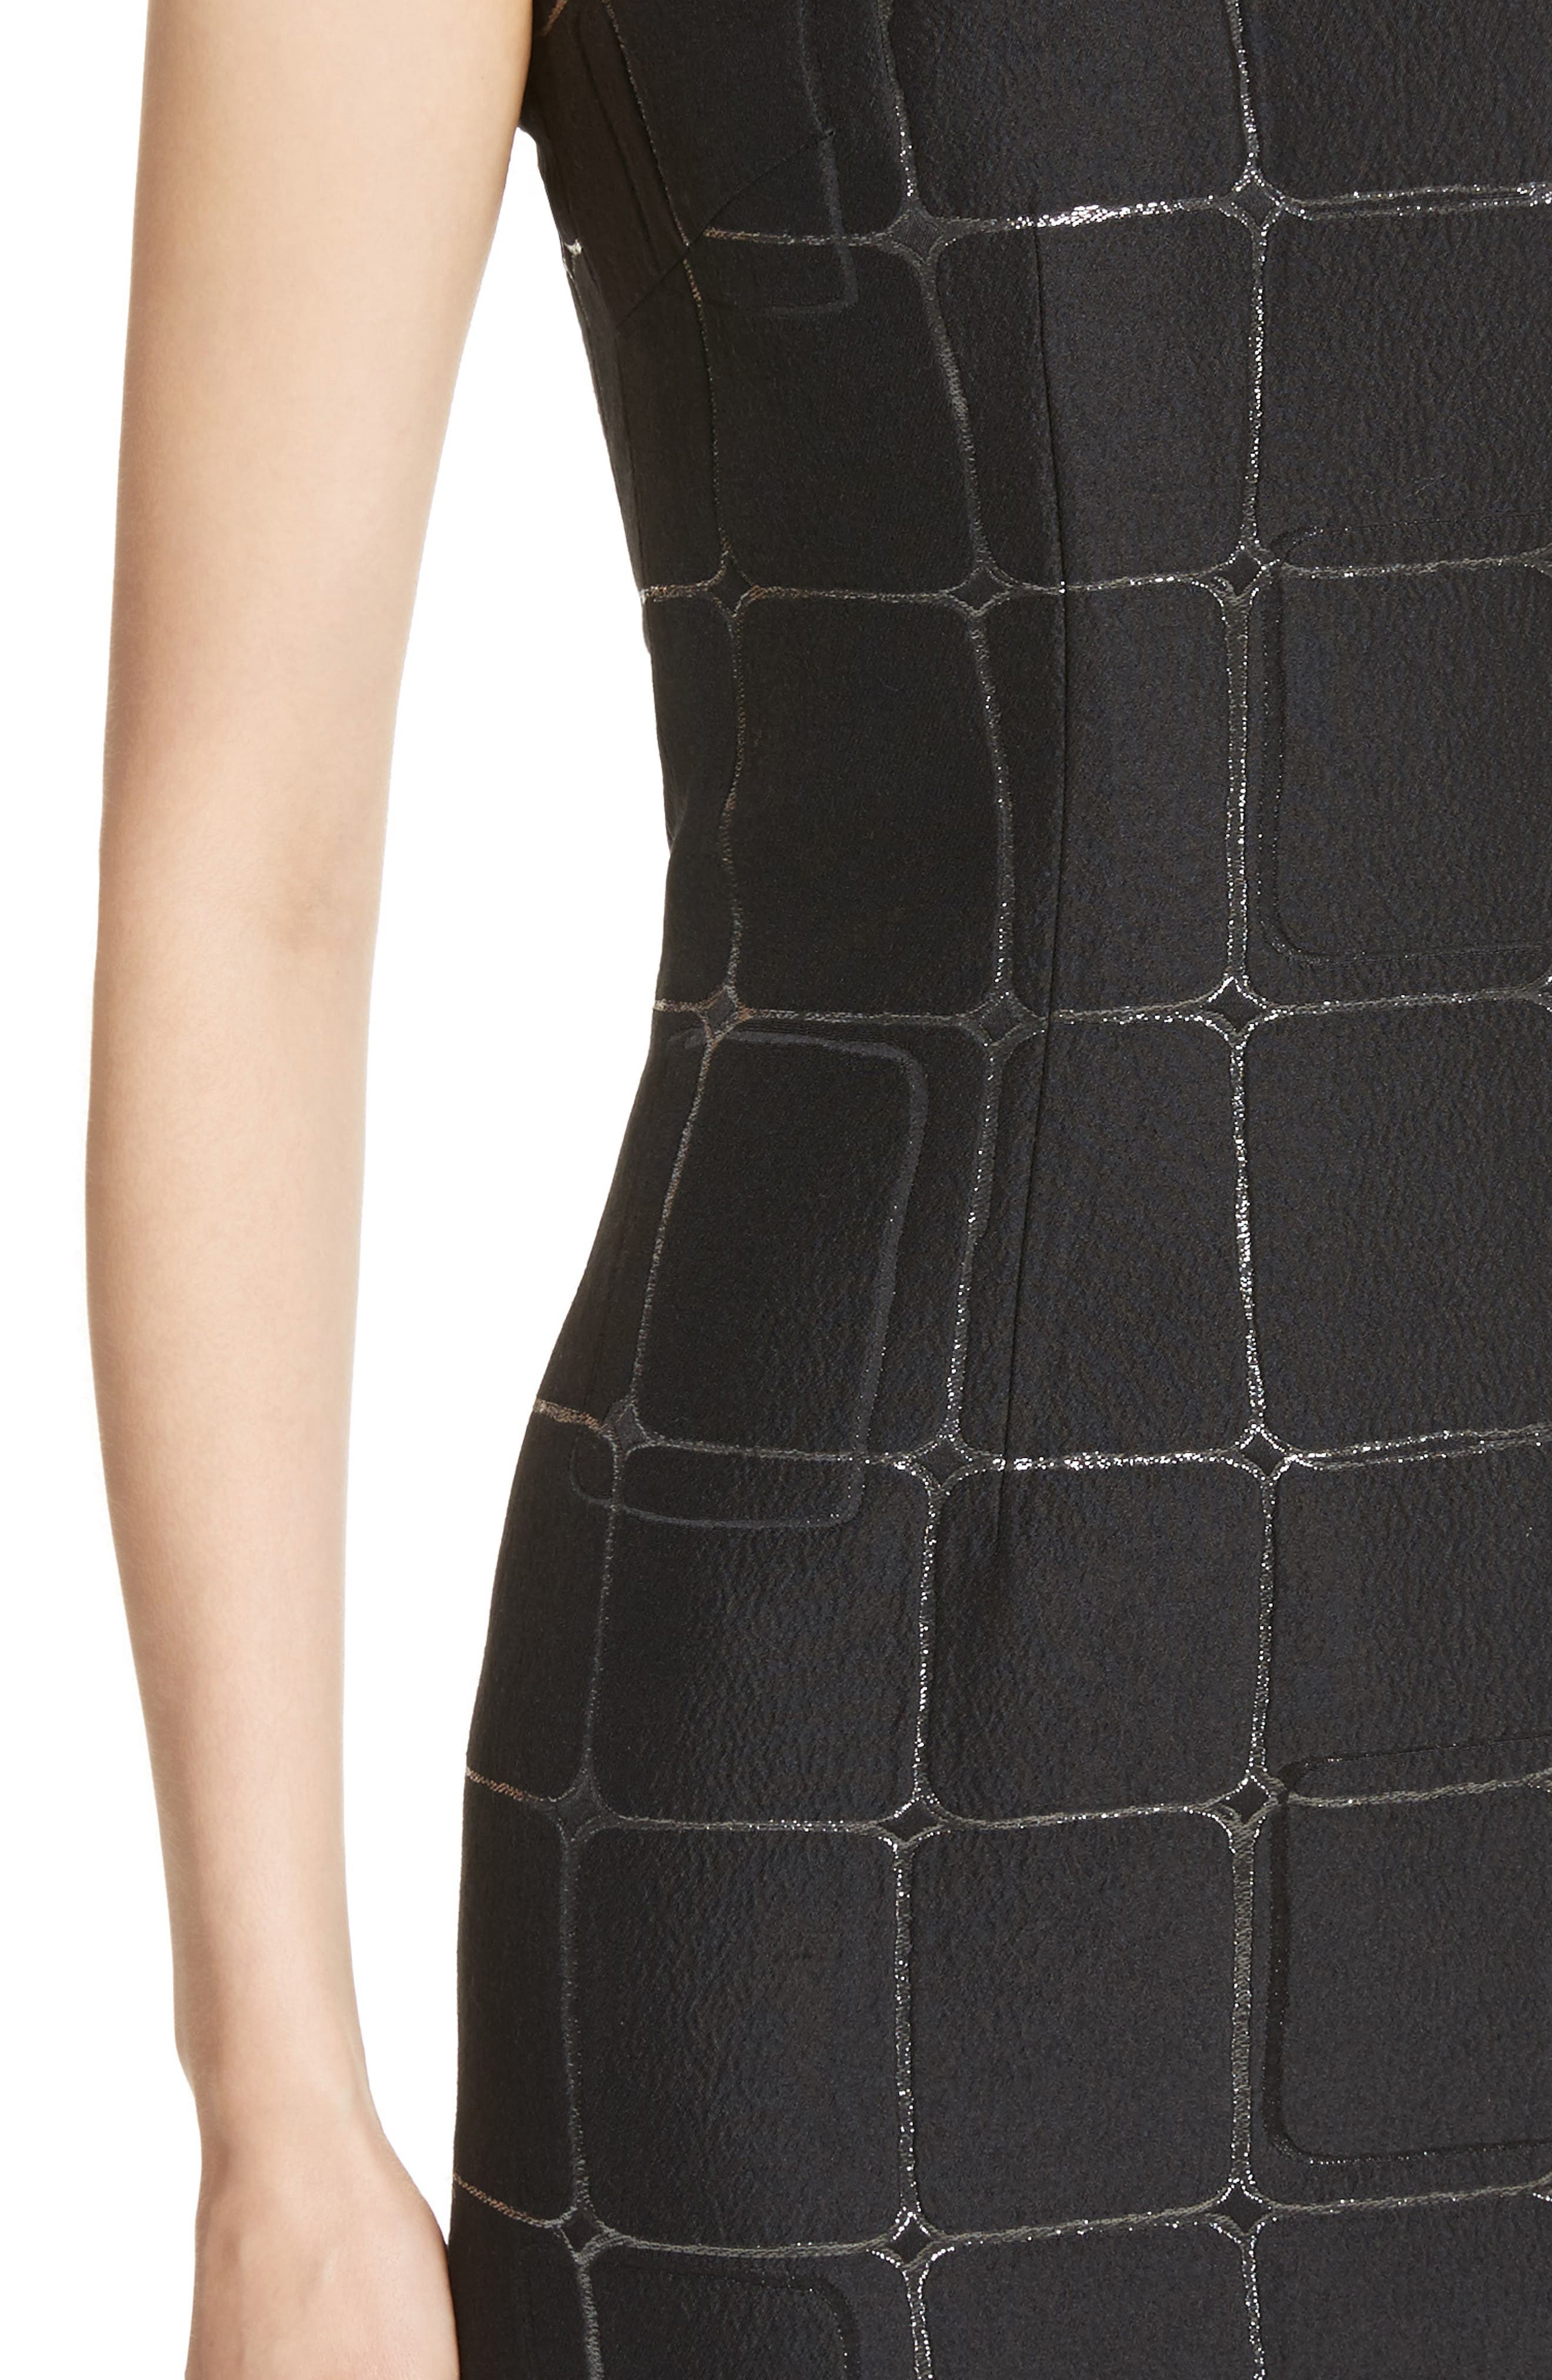 Metallic Jacquard Sheath Dress,                             Alternate thumbnail 6, color,                             Caviar Metallic